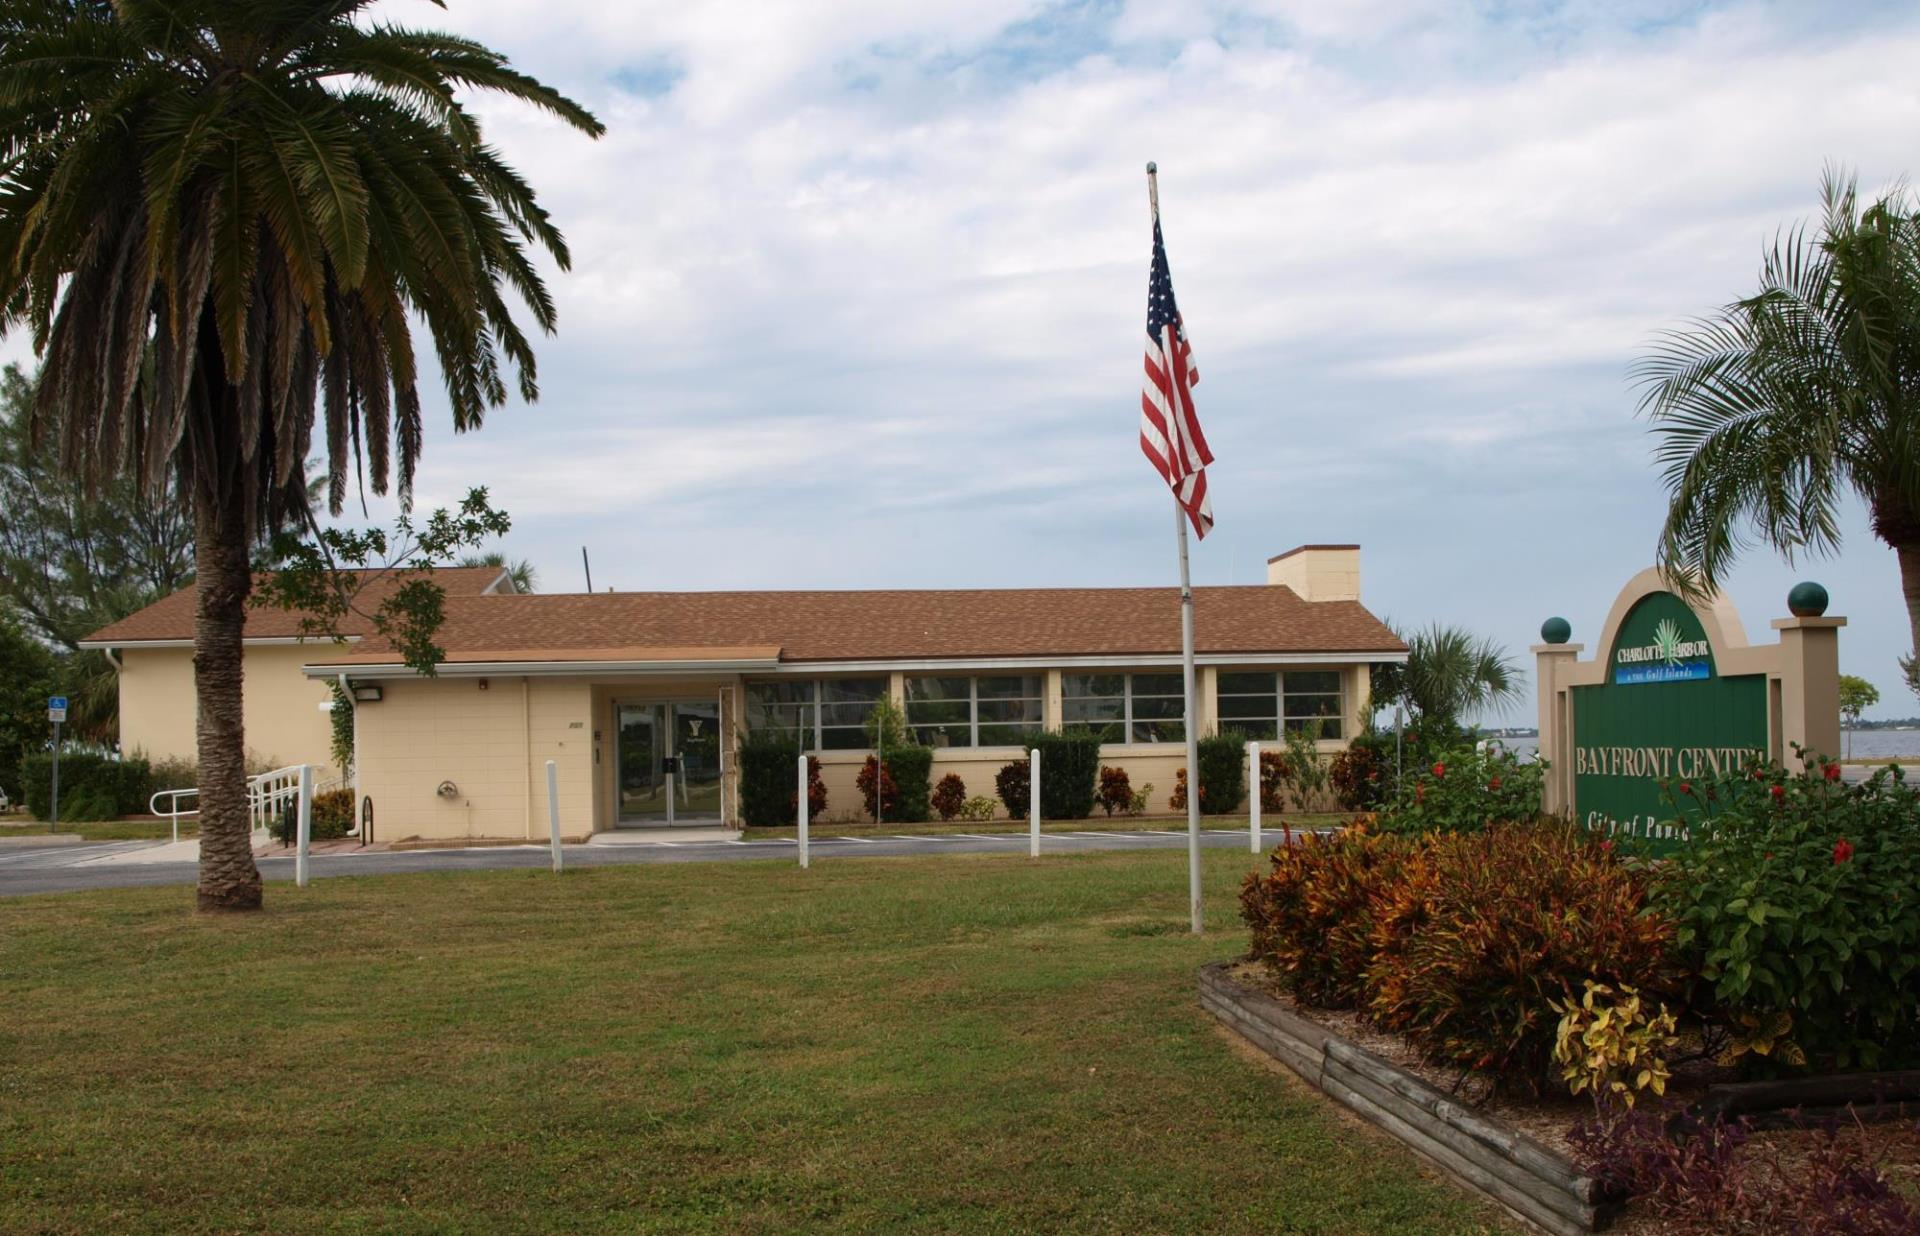 Photo of Bayfront Center one story beige building